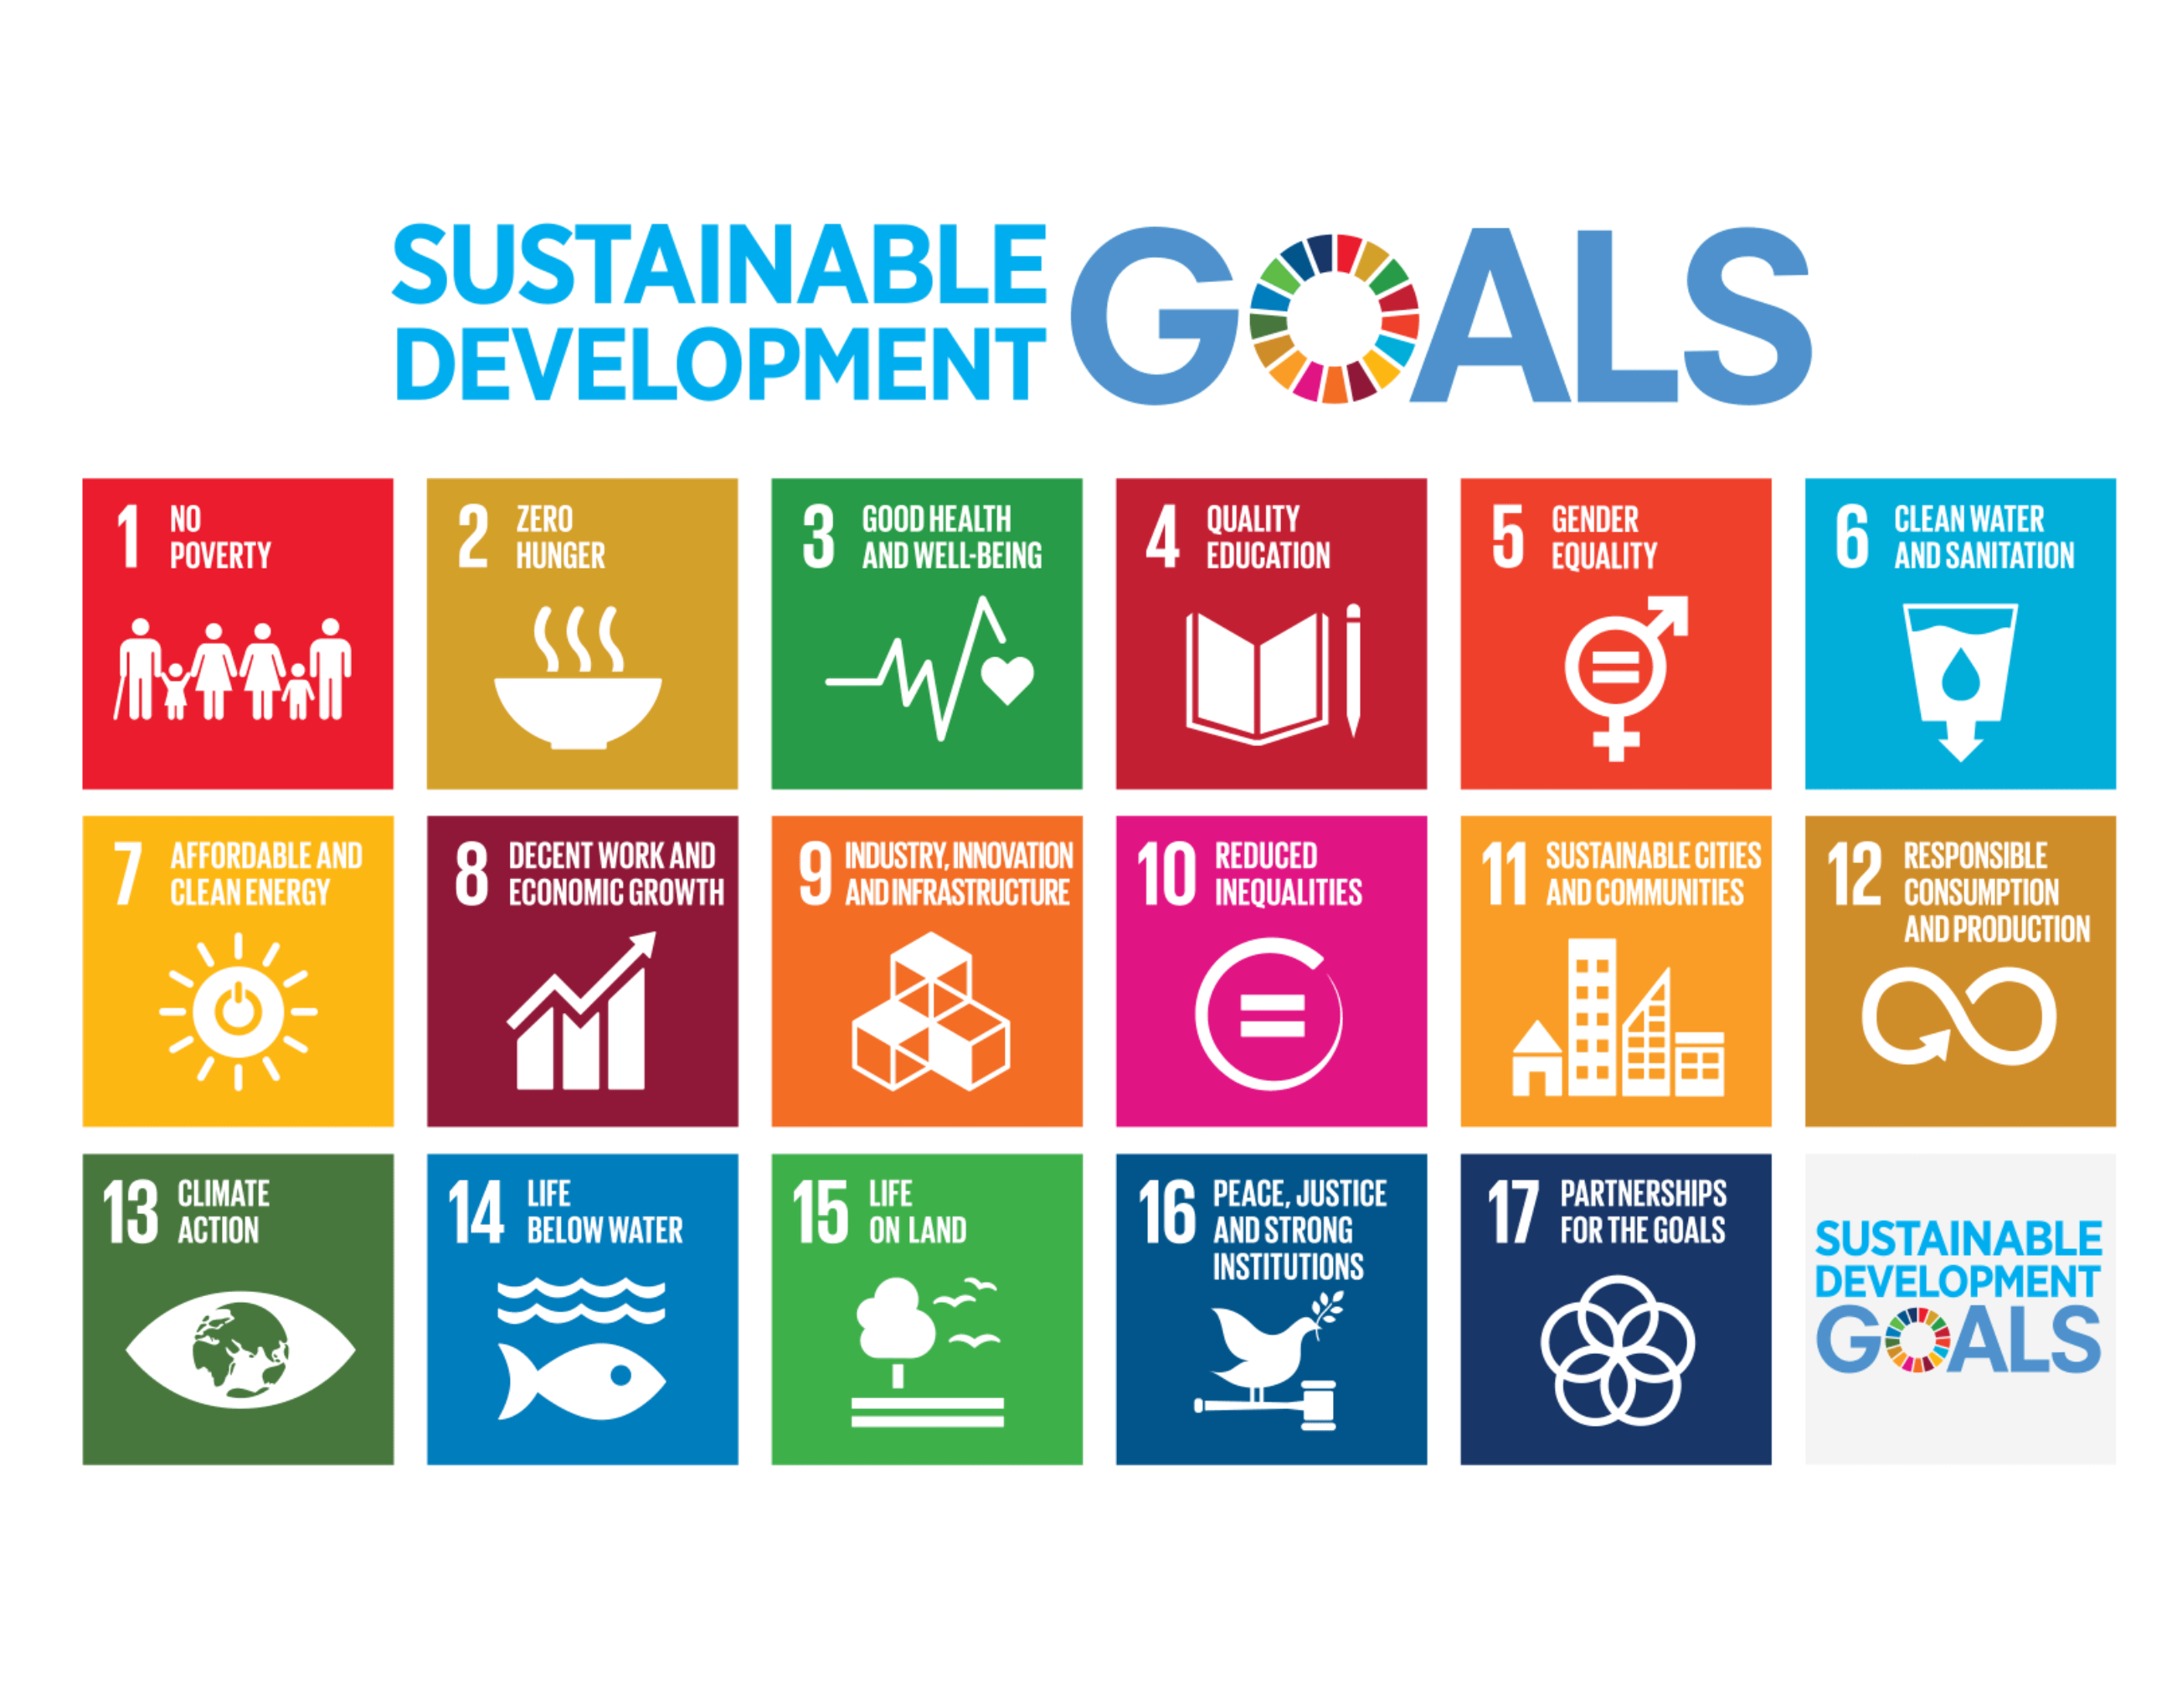 17 United Nations sustainable development goals